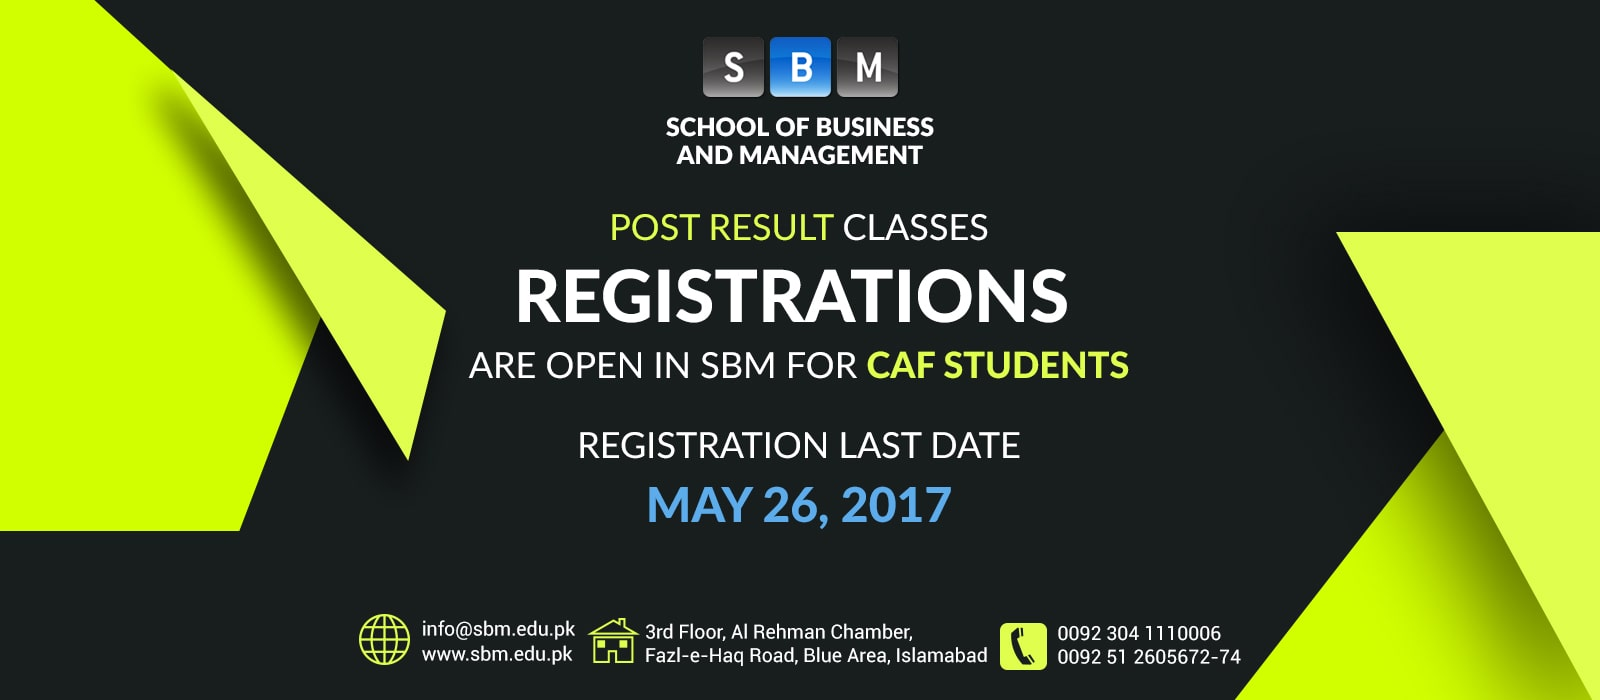 Registration is open for CAF students